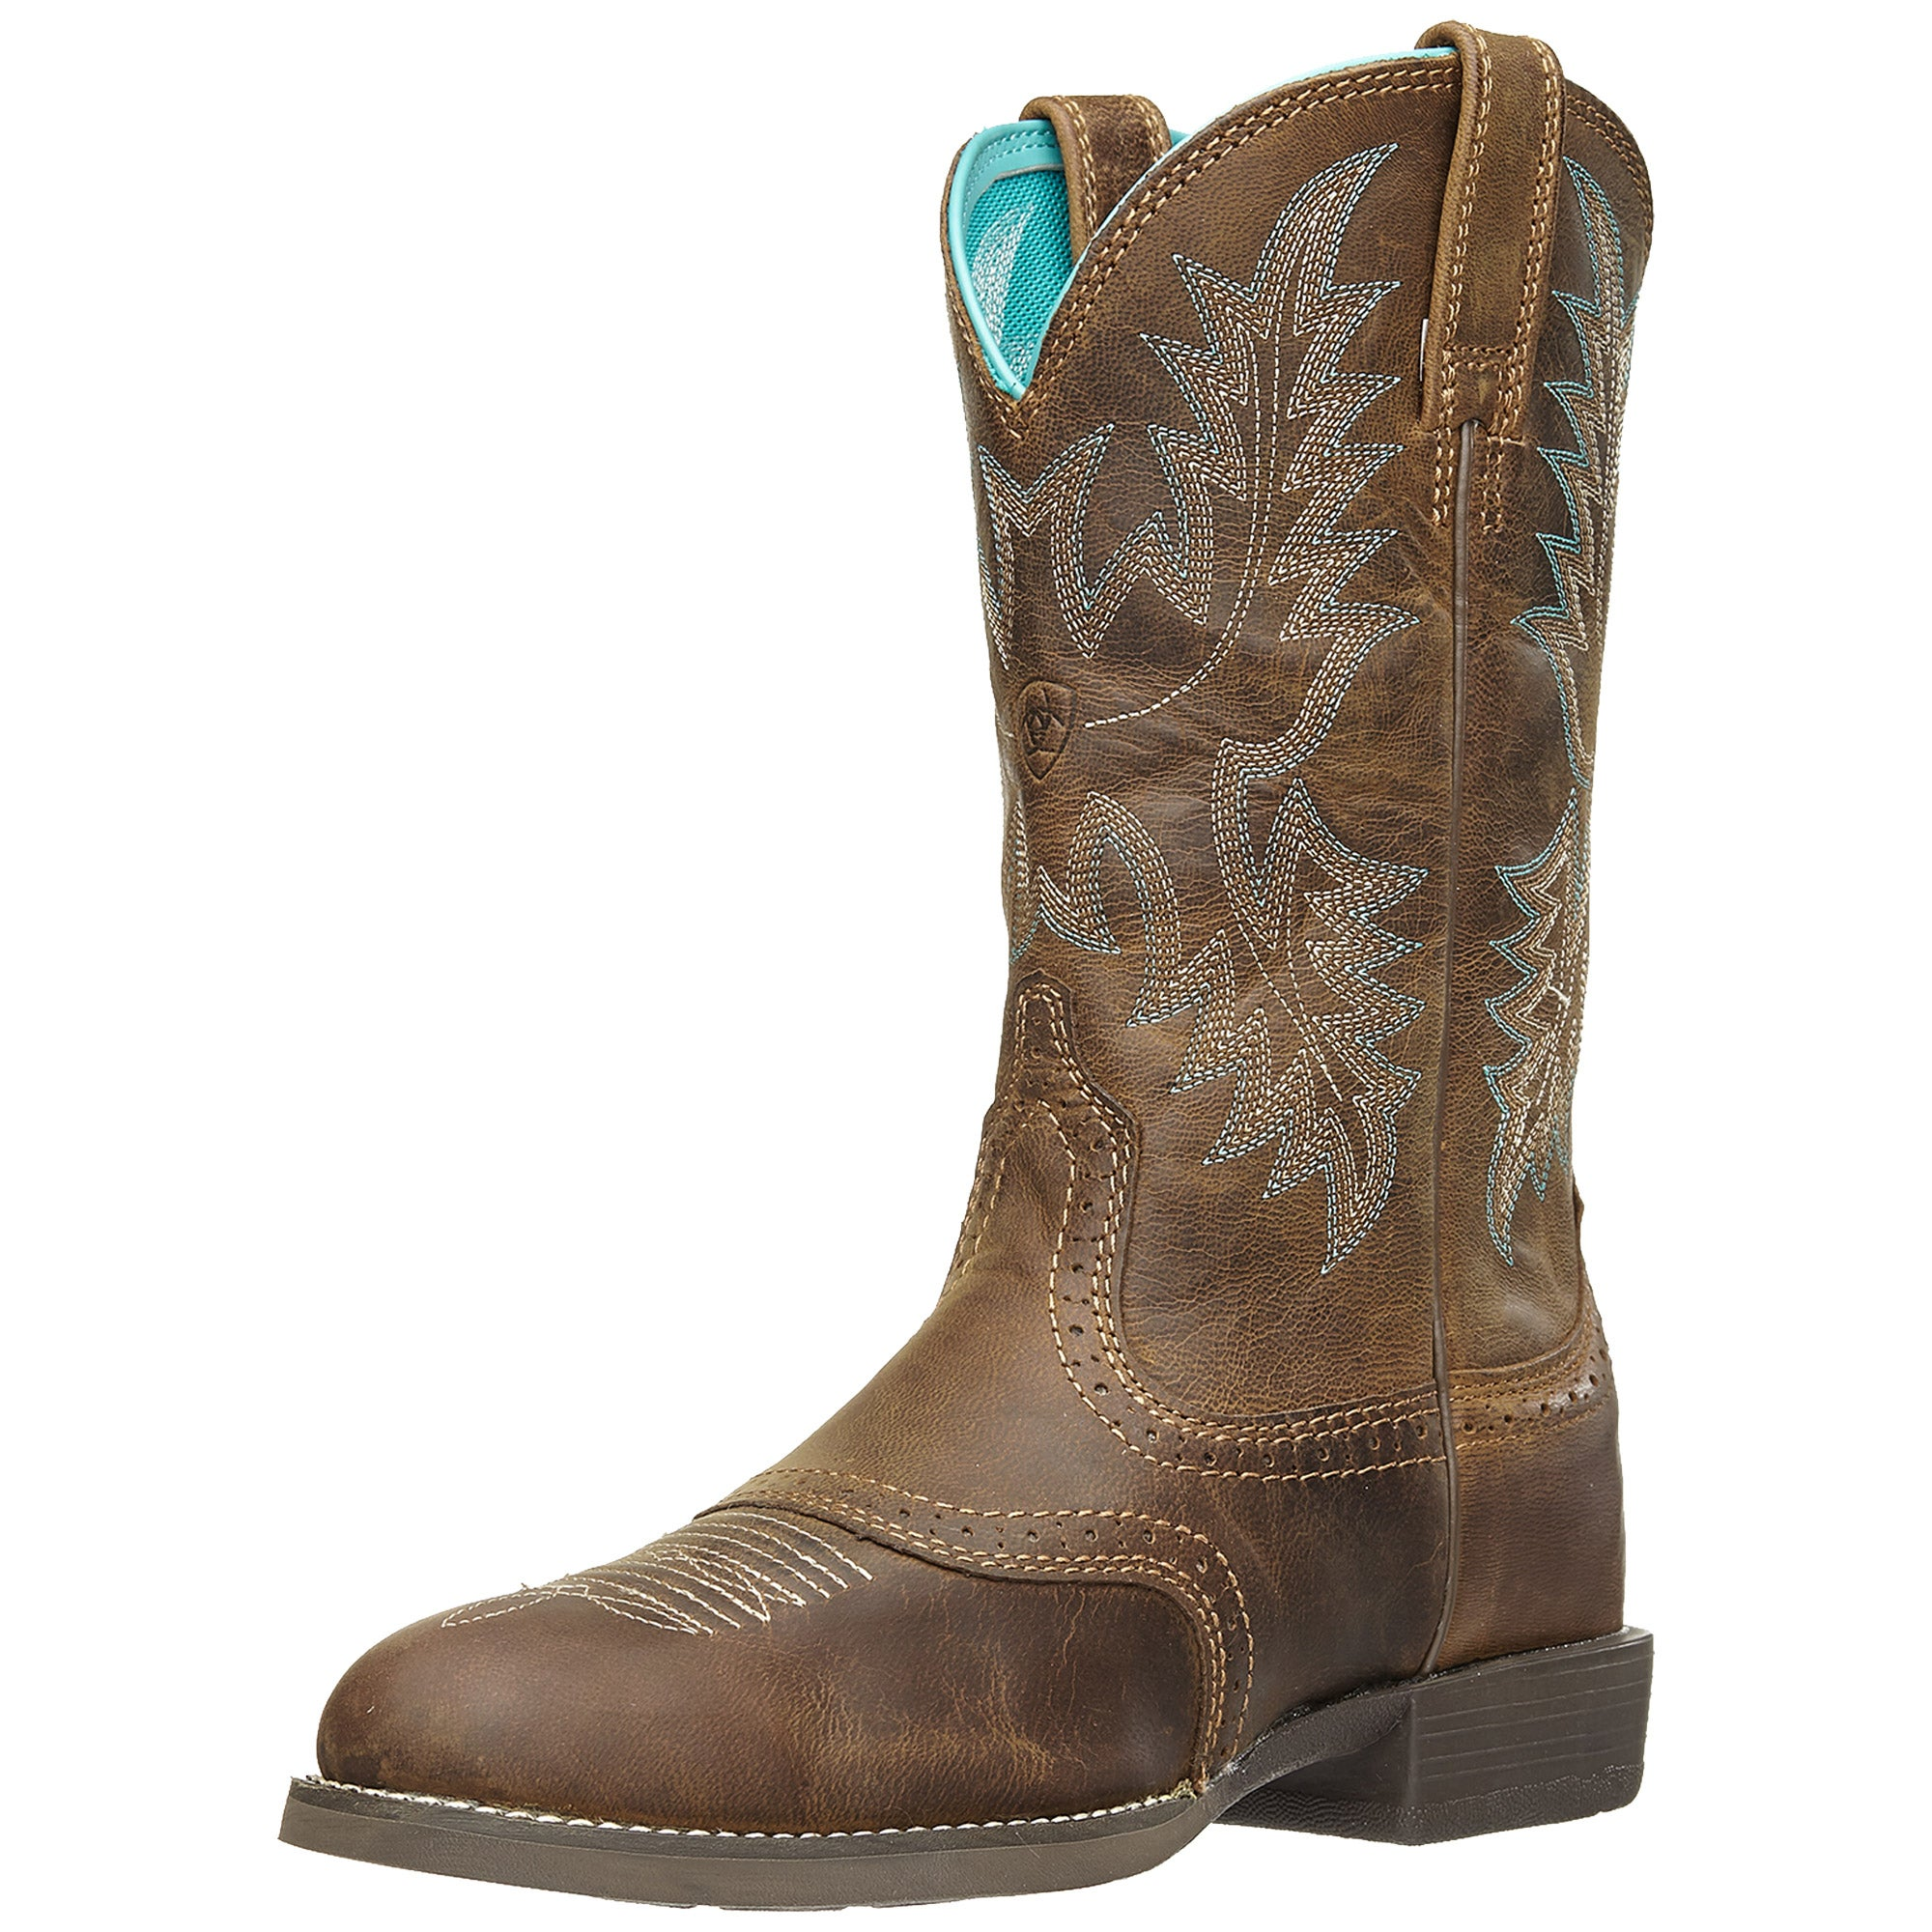 c9b626795c4 Ariat Women's Heritage Stockman Round Toe Cowboy Boots - Riding ...